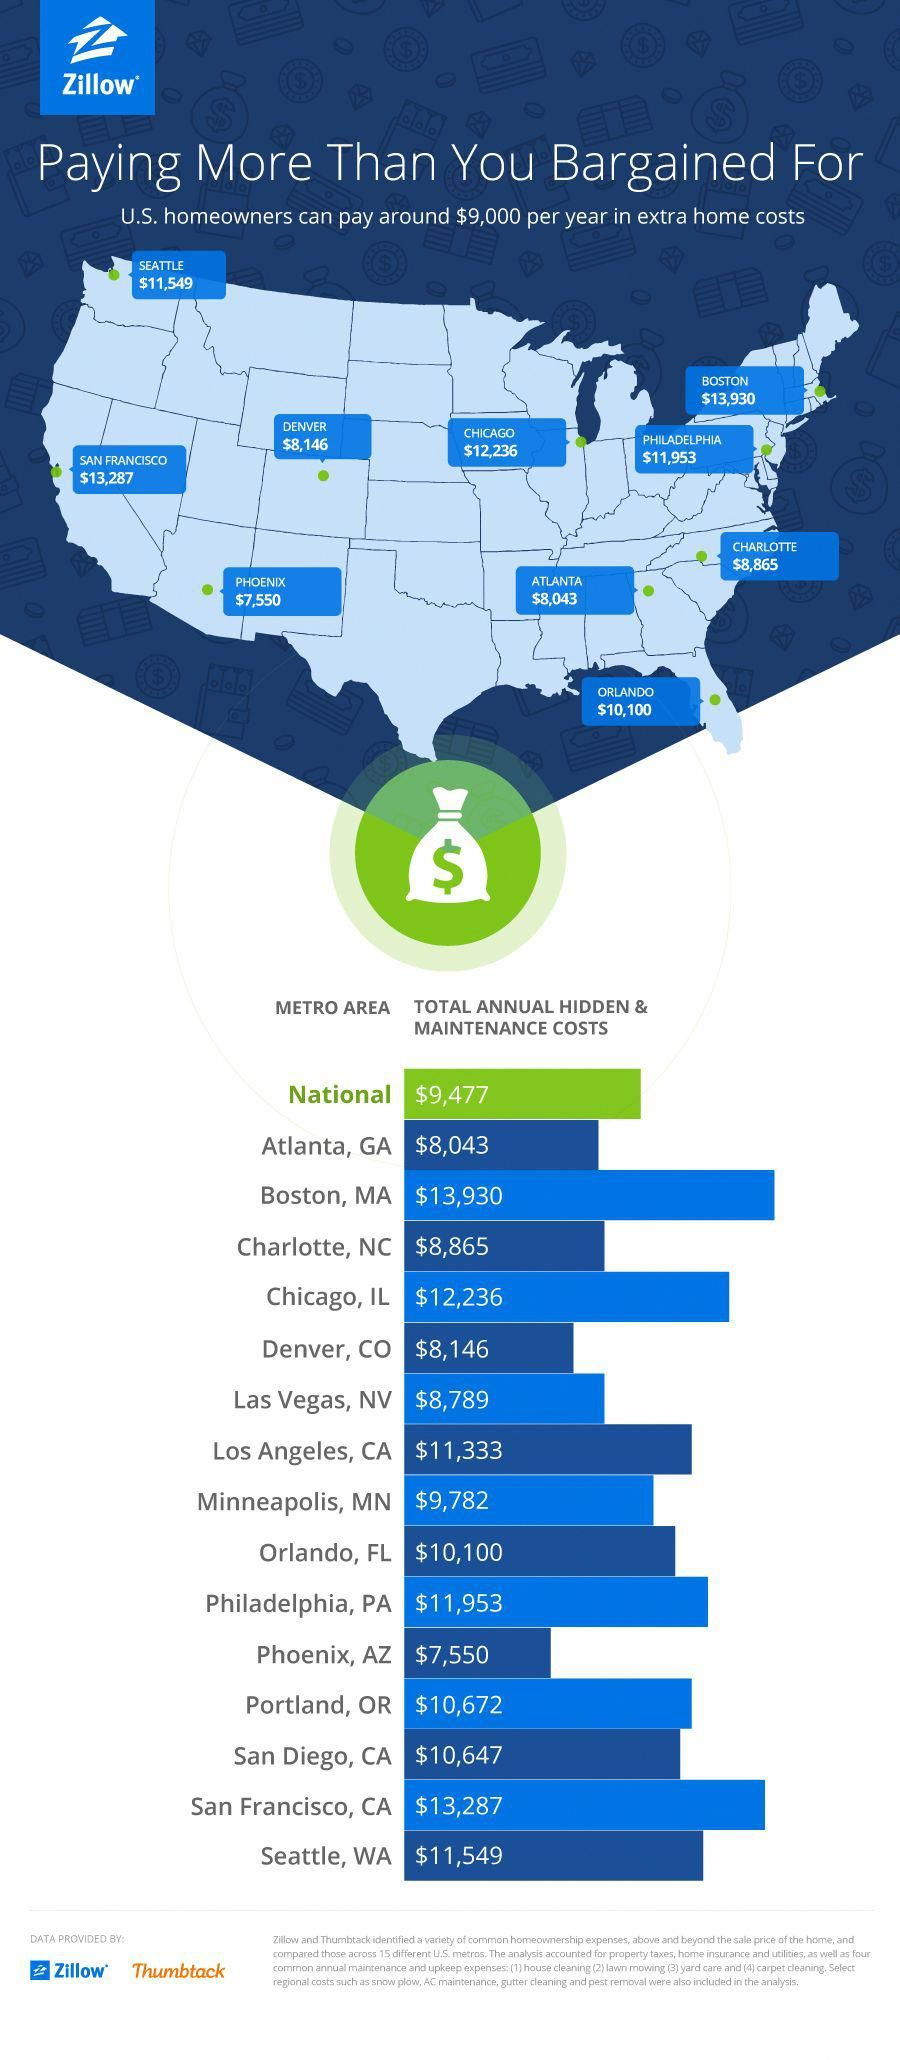 Even Though Buying A Home Is Cheaper Than Renting In Many Cities